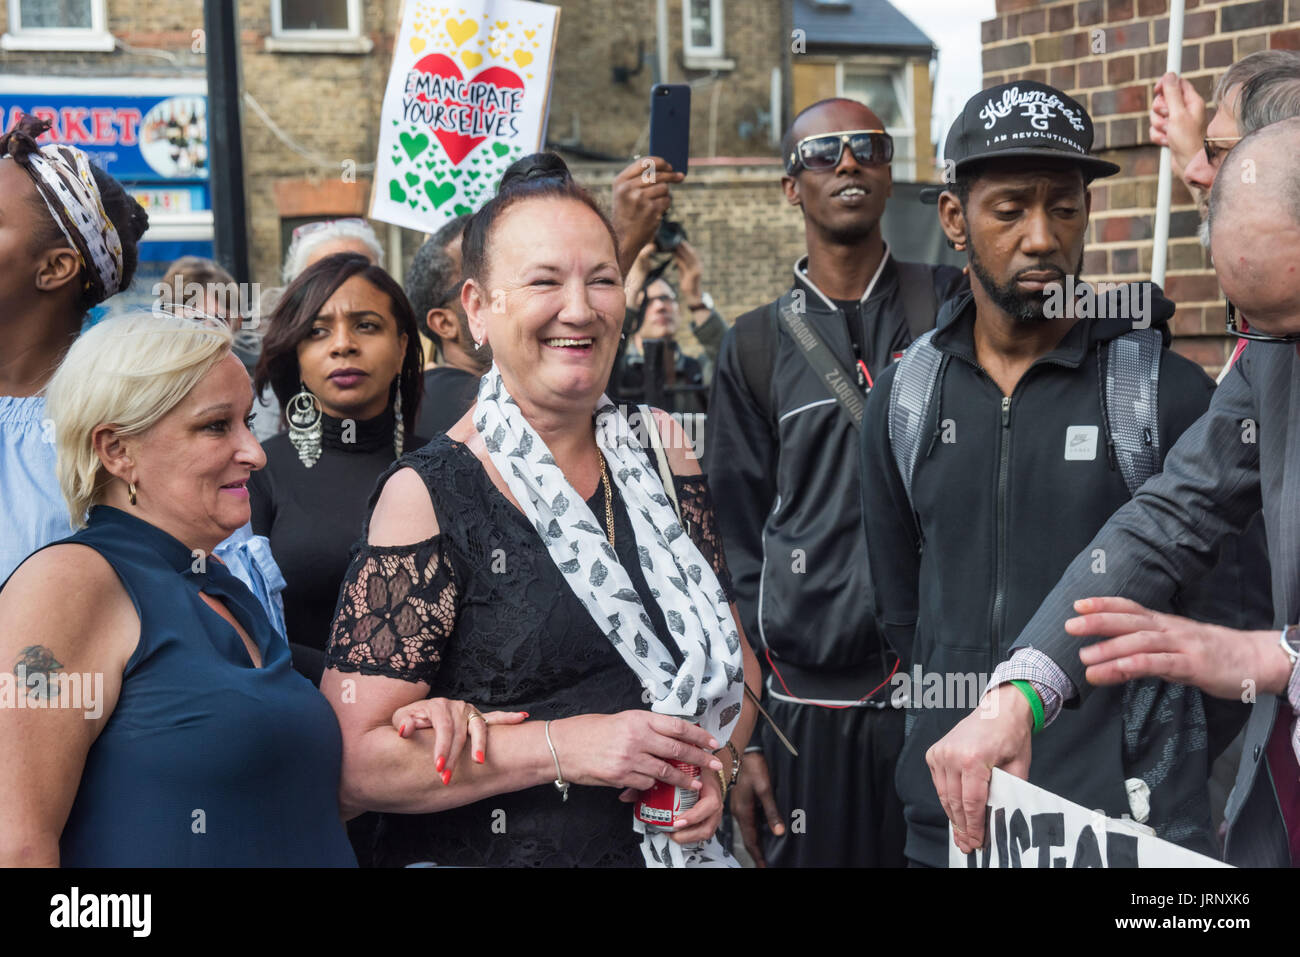 London, UK. 4th Aug, 2017. London, UK. 4th August 2017. Mark Duggan's mother Pamela Duggan (centre) with family and friends at the rally at Tottenham Police Station remembering the death of Mark Duggan on the sixth anniversary of his killing by police, and also the police killing of other members of the Tottenham community - Cynthia Jarrett, Joy Gardner, Roger Sylvester, Mark Duggan and Jermaine Baker and the recent murders of Rashan Charles, Darren Cumberbatch and Edson Da Costa. Led by Stafford Scott, there was poetry, a minute of silence and speeches from family members as well as local - Stock Image